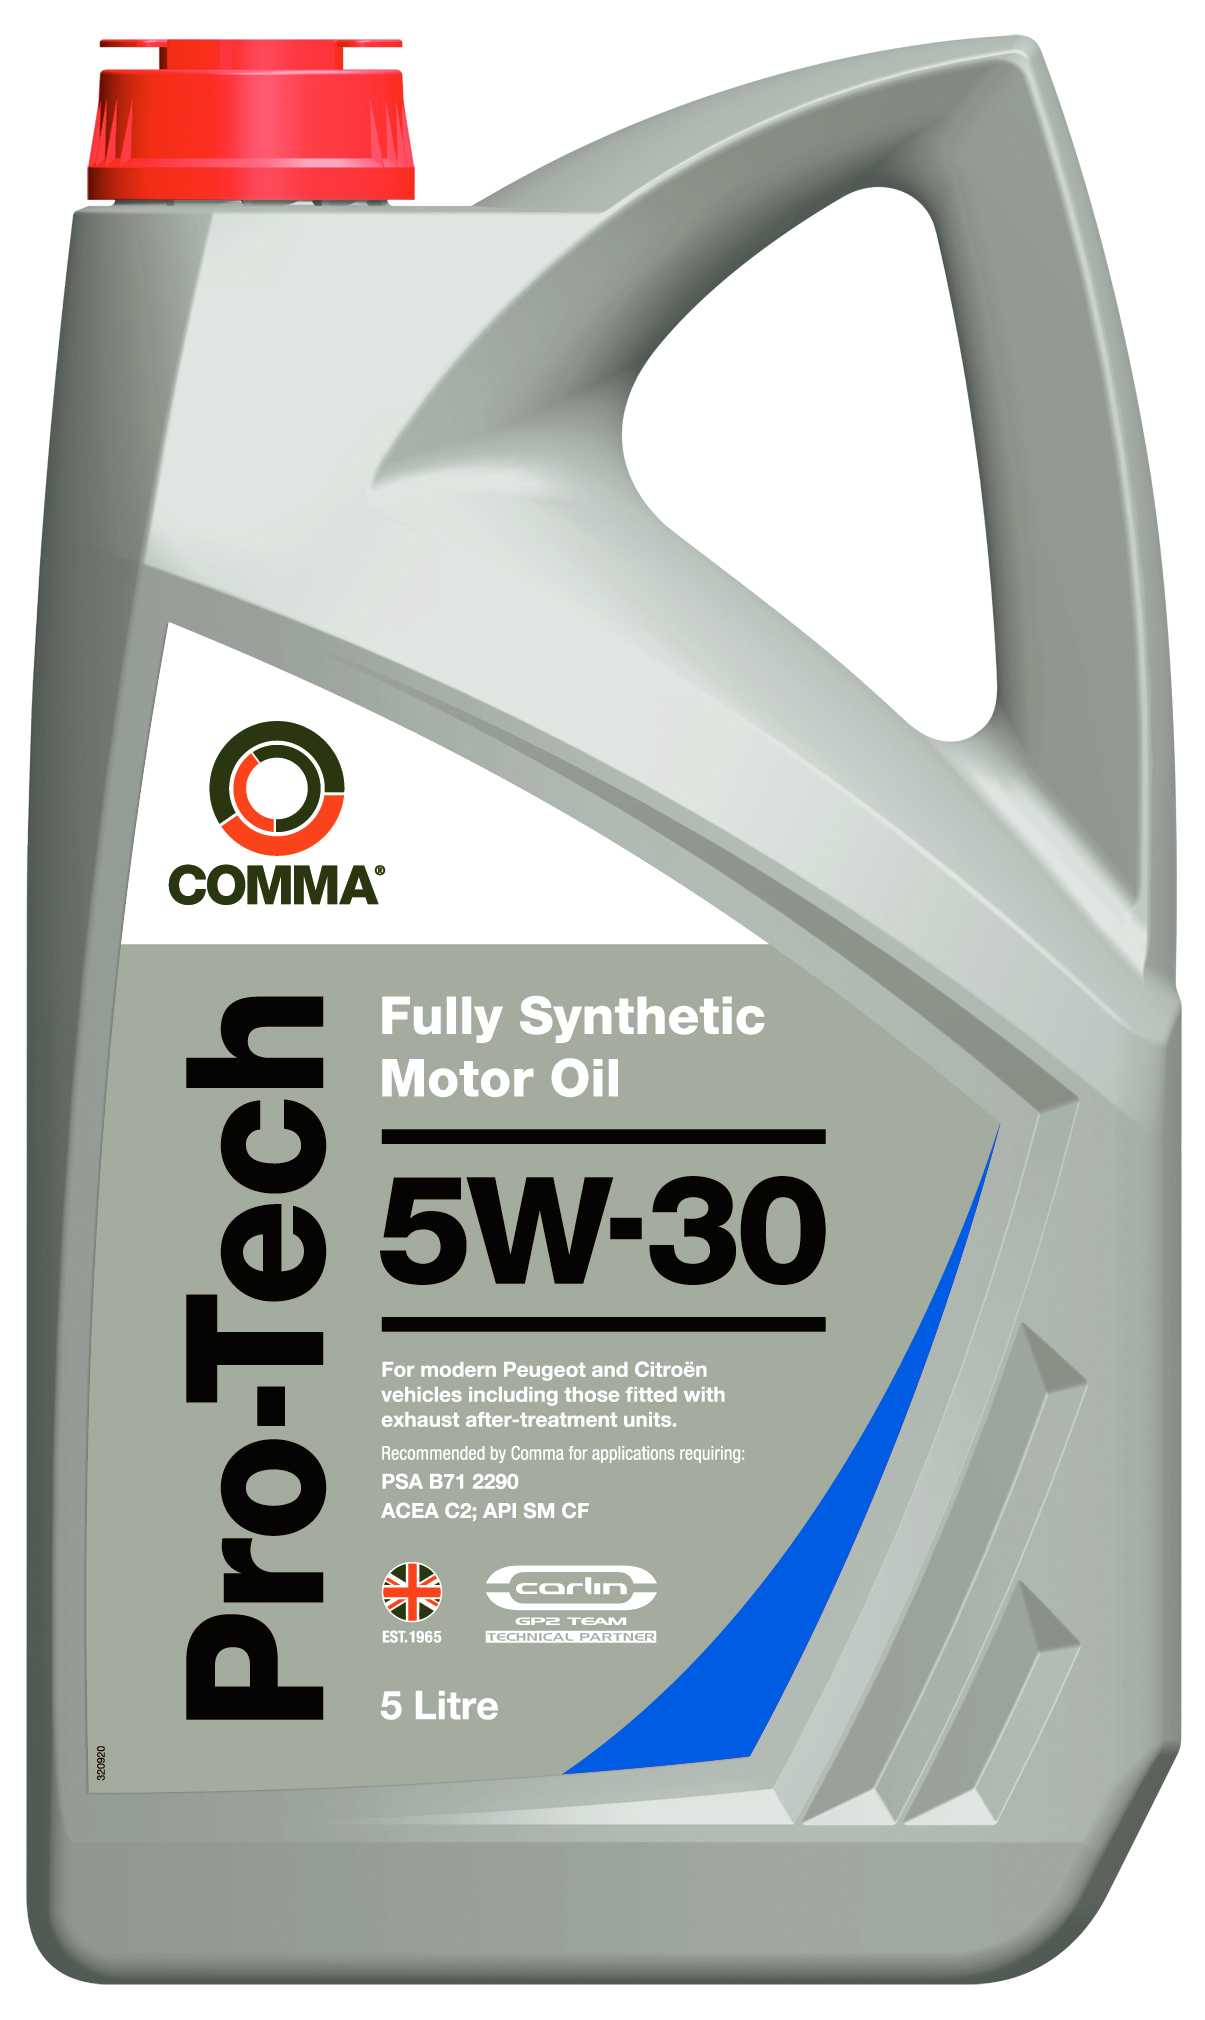 Comma oils pro tech 5w30 fully synthetic engine oil 5 for Fully synthetic motor oil